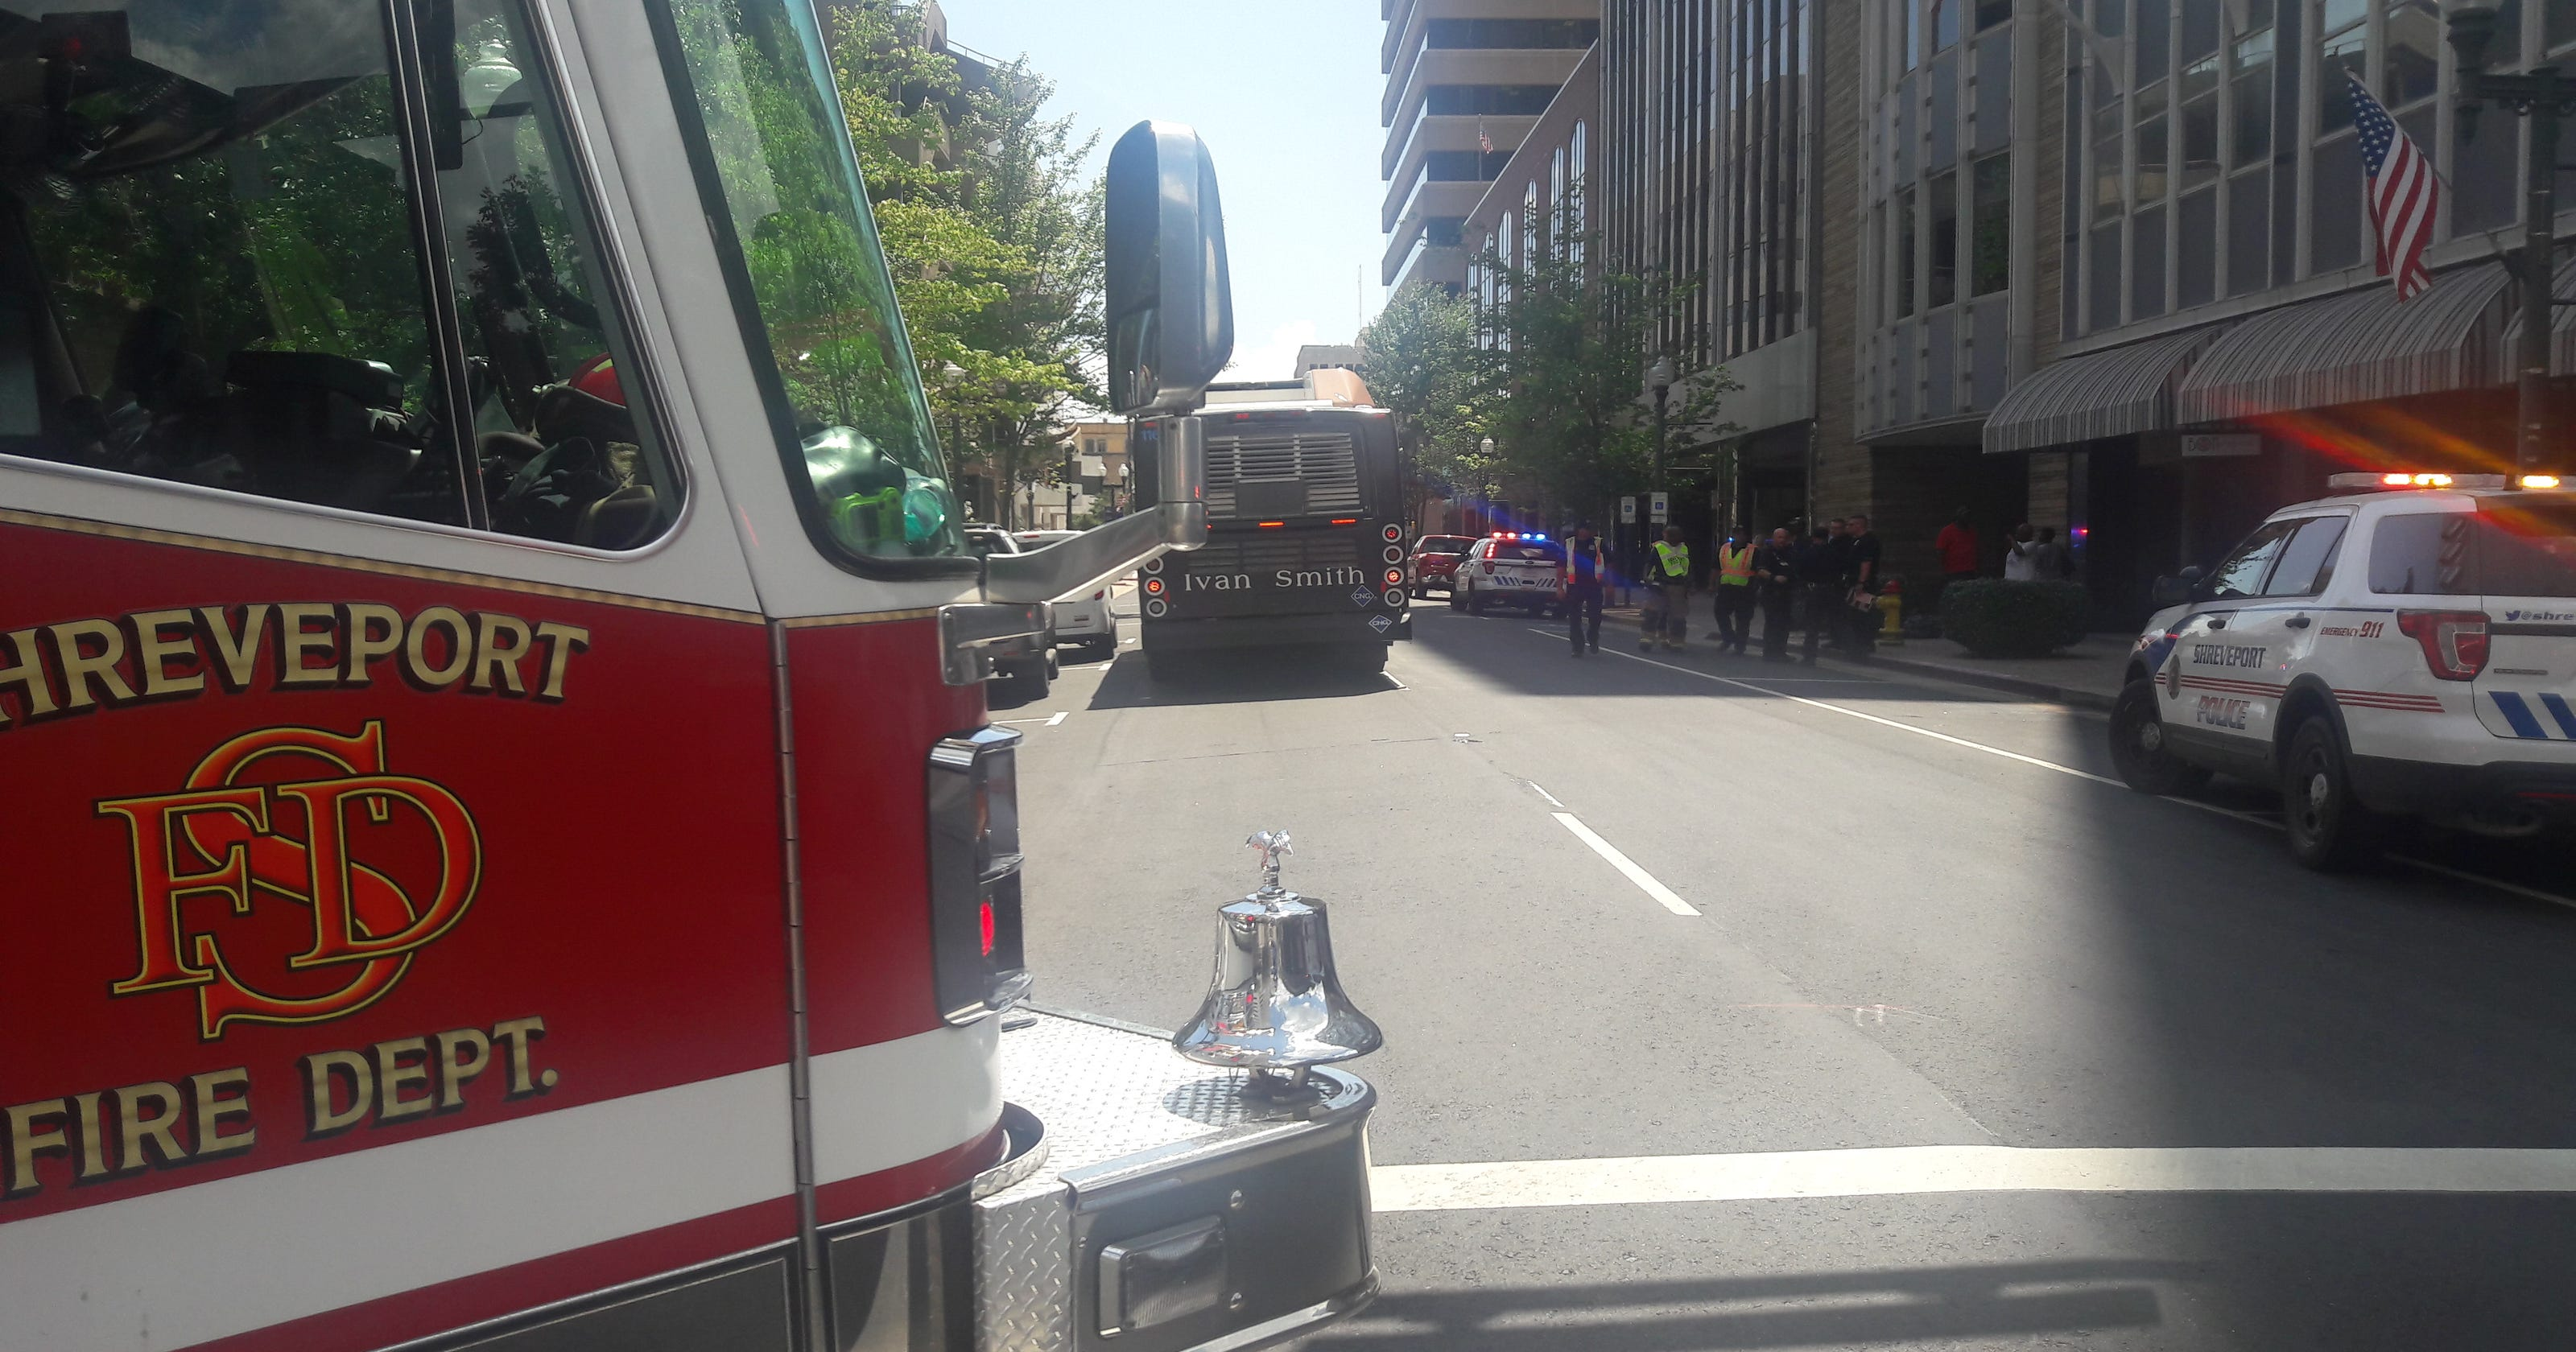 SporTran bus involved in downtown wreck, 10 injured